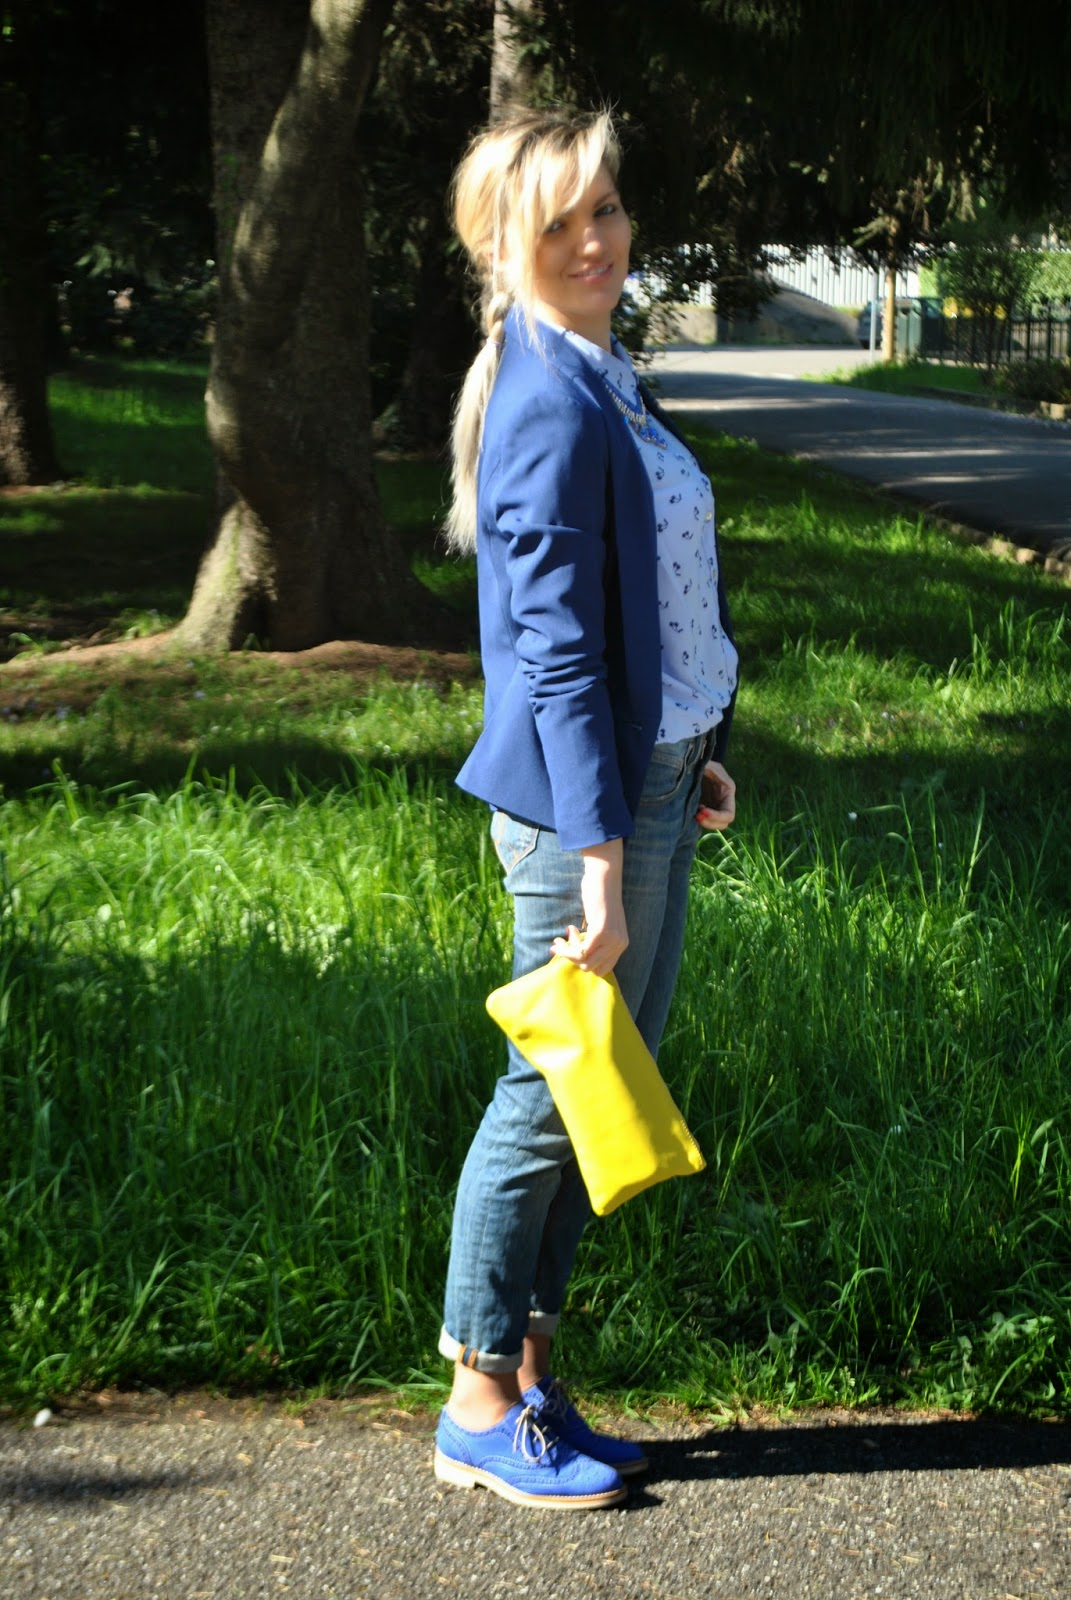 abbinamento giallo blu mariafelicia magno fashion blogger outfit blu outfit giacca blu outfit camicia stampa ciliegie camicia pull&bears outfit stringate maschili mariafelicia magno colorblock by felym mariafelicia magno fashion blogger outfit giacca blu come abbinare il blu outfit borsa gialla outfit scarpe blu come abbinare il giallo abbinamenti giallo blu abbinamenti blu outfit aprile 2015 outfit  outfit primaverili casual outfit donna primaverili outfit casual donna spring outfits outfit blue how to wear blue blue blazer yellow bag fashion bloggers italy girl blonde hair blonde girls braids collana pietre blu majique fornarina massimiliano incas